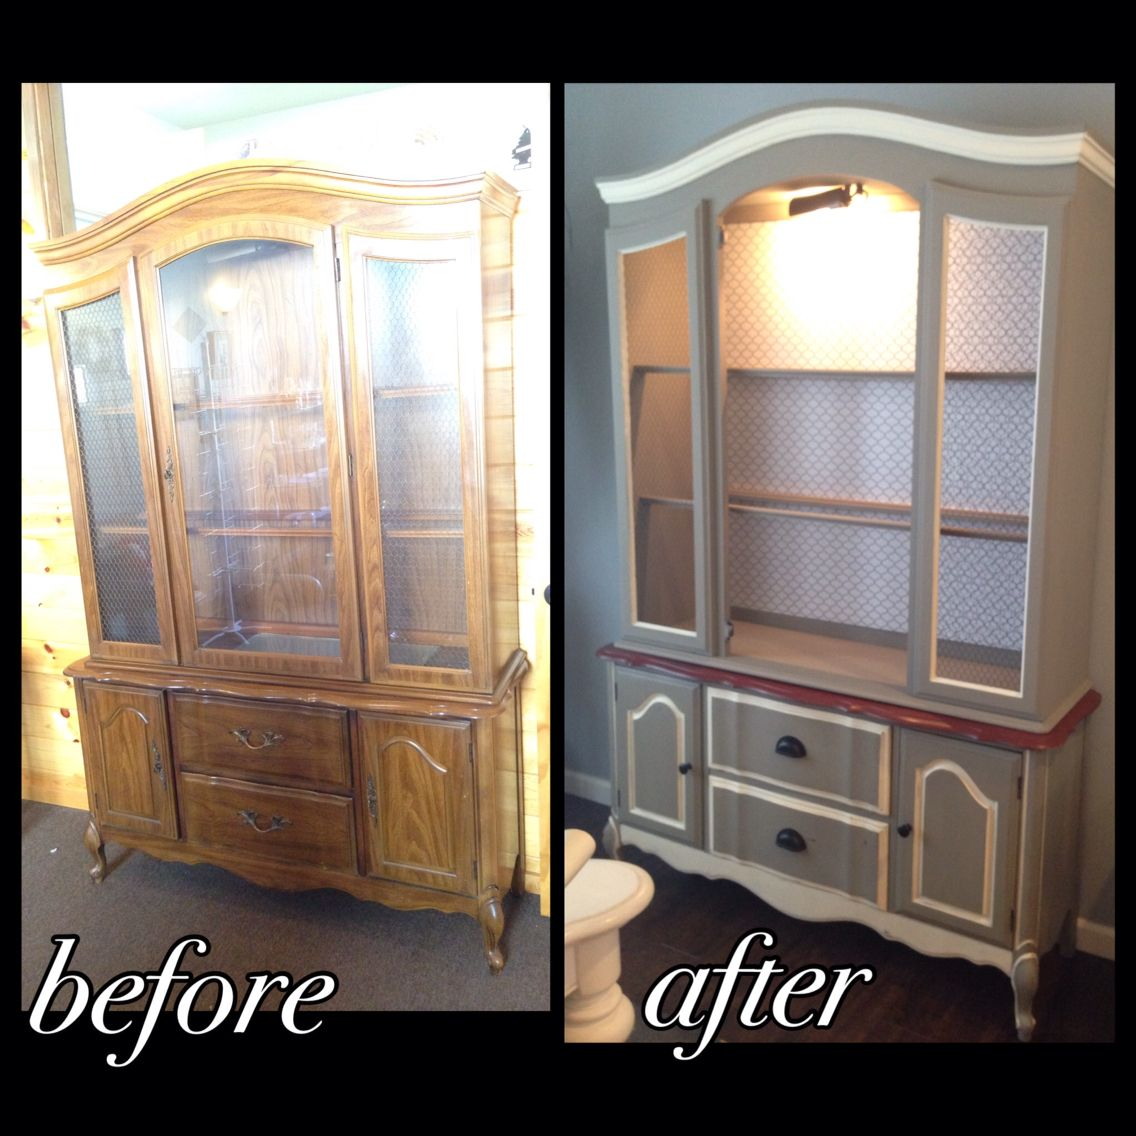 My First Chalk Paint Experience!